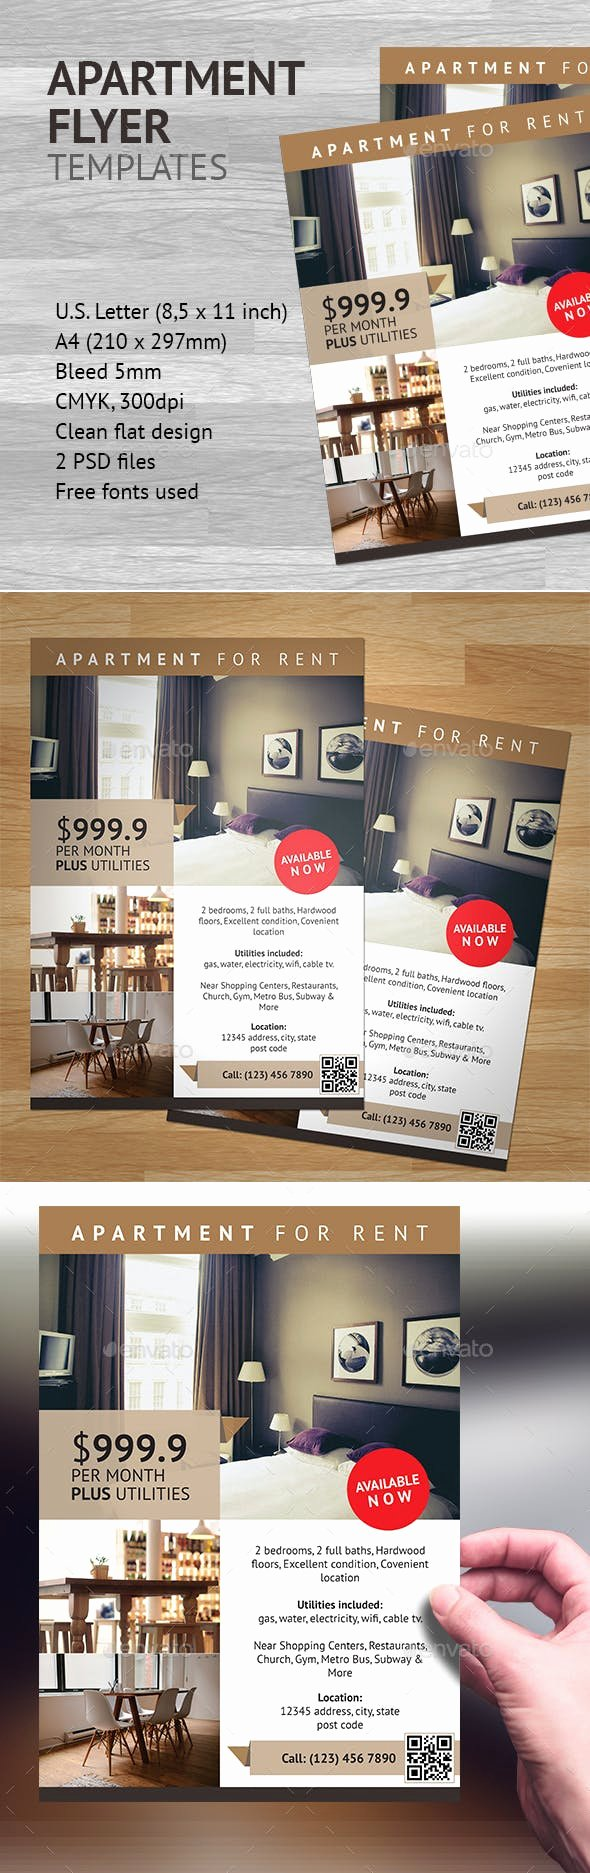 Apartment Flyers Free Templates Lovely Apartment Flyer Template 1 by Heriwibowo